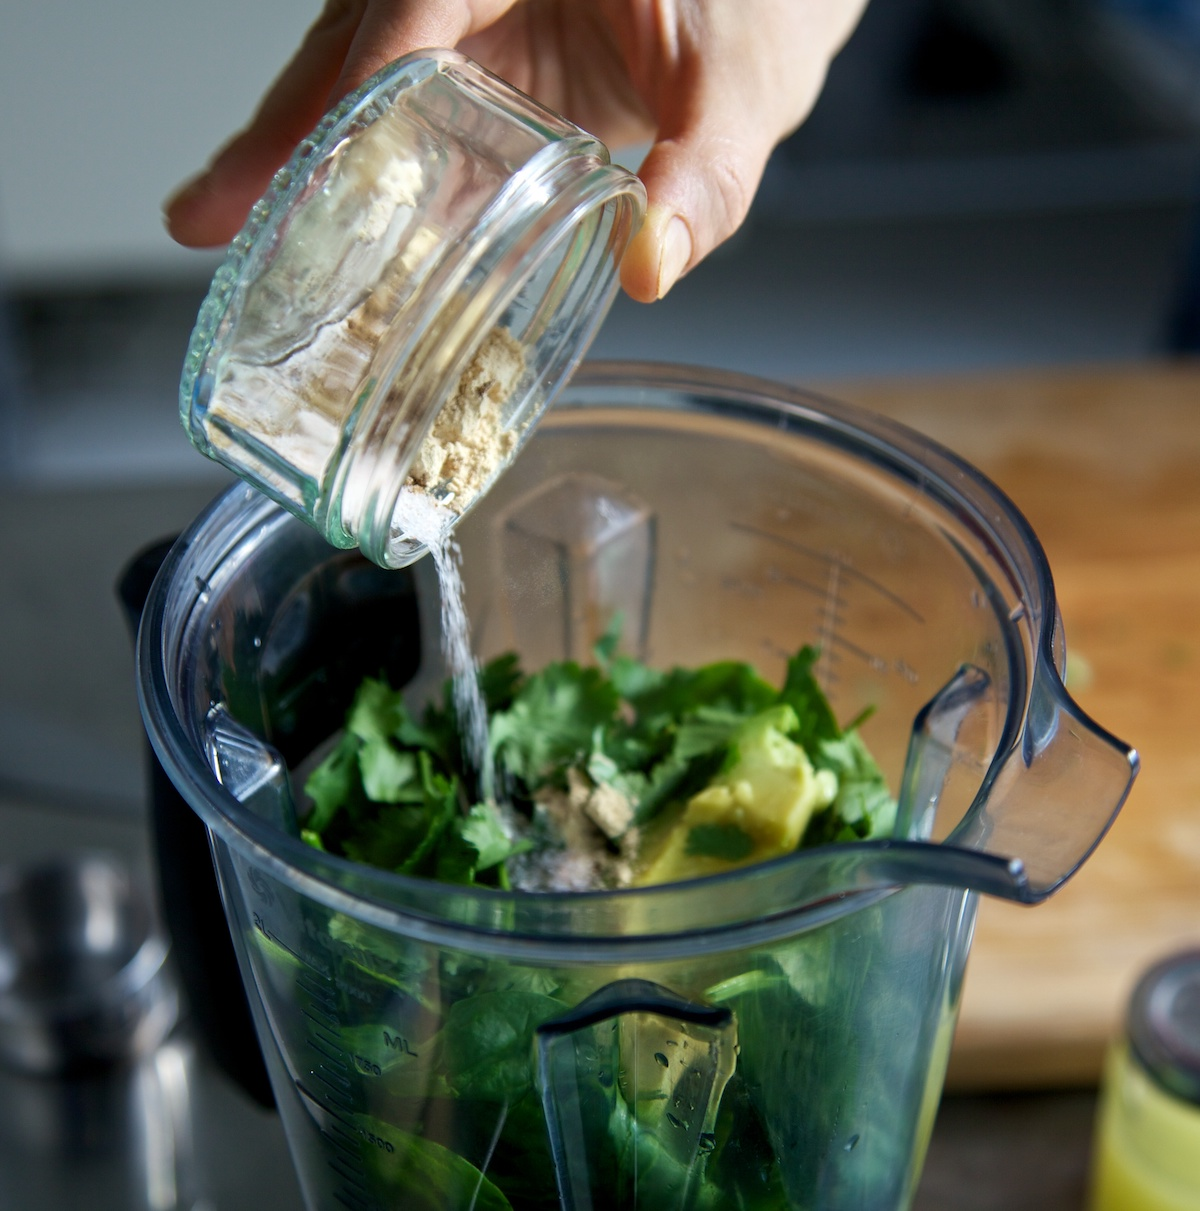 Adding spices to the Vitamix jug with the raw avocado, spinach and lime soup ingredients in